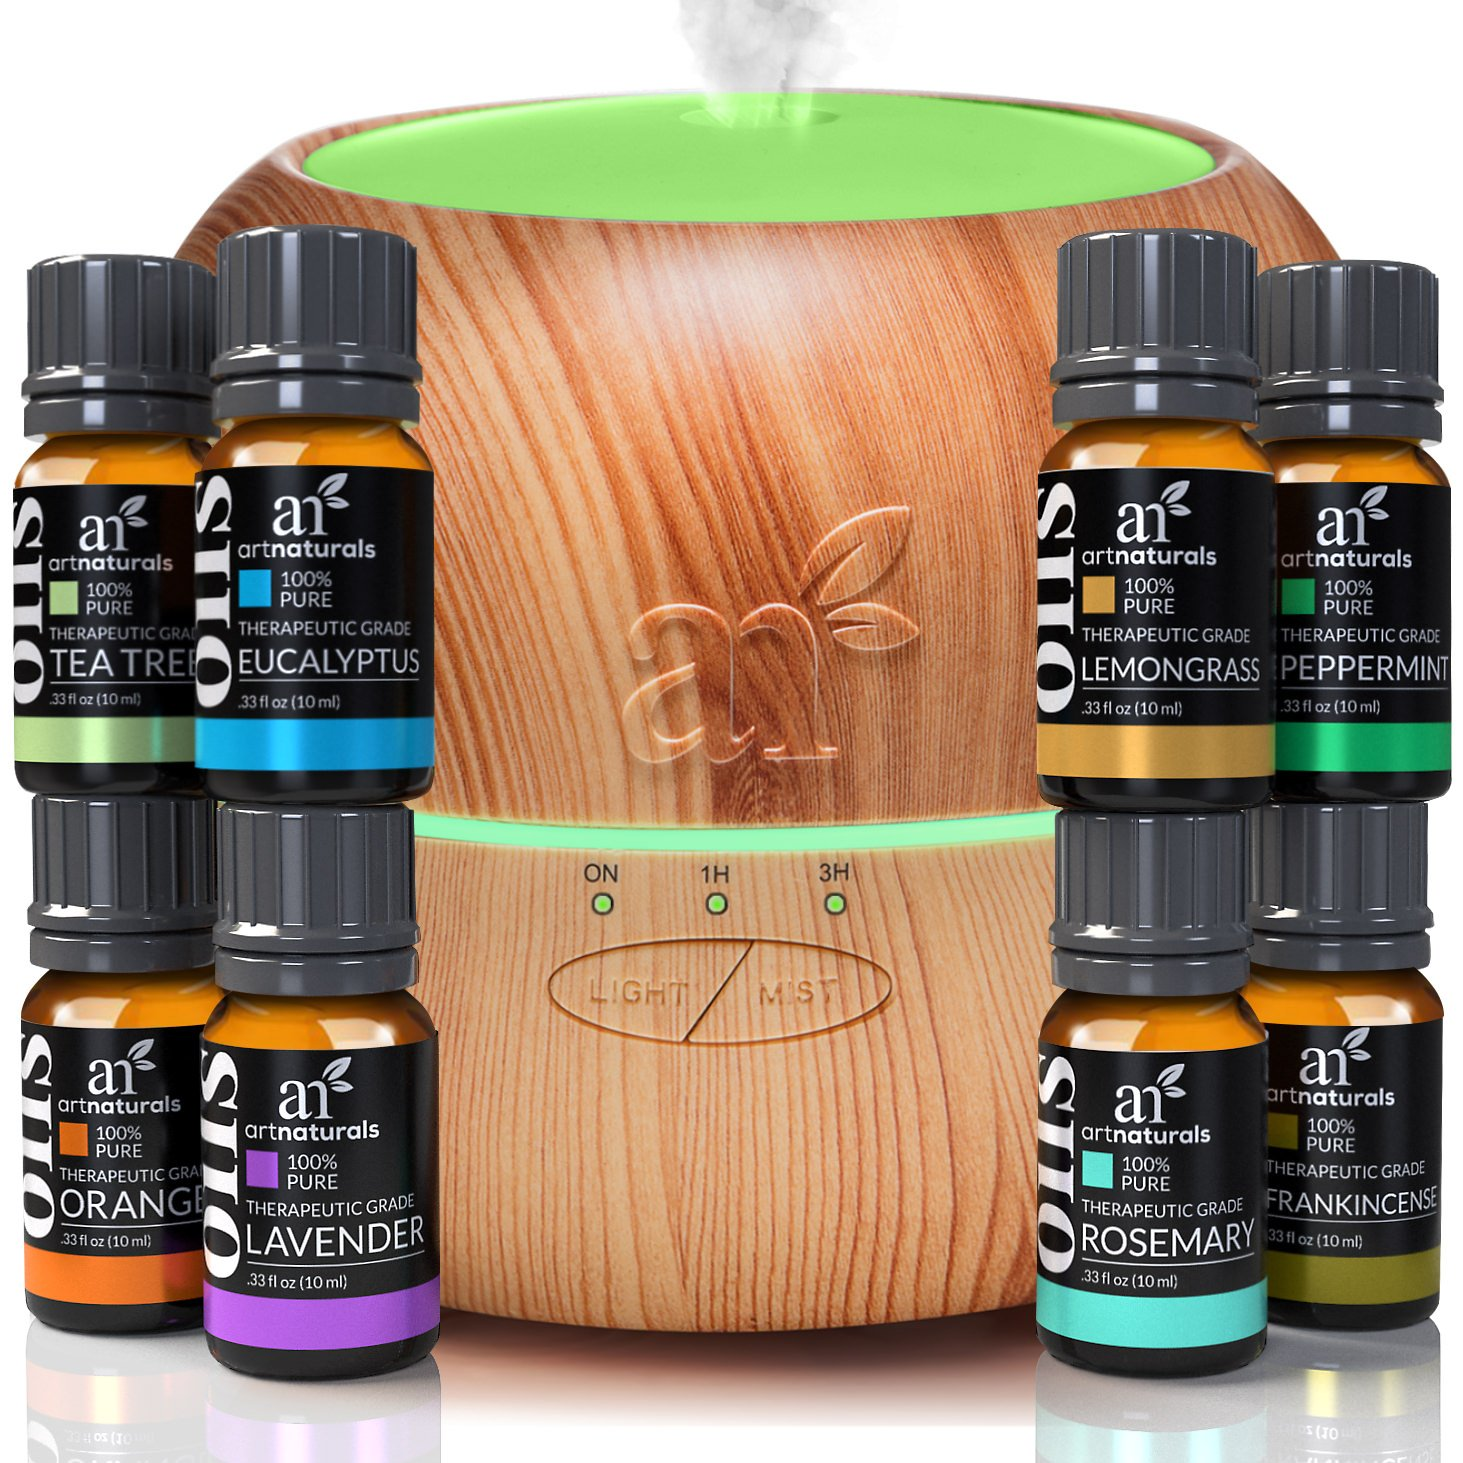 ArtNaturals Aromatherapy Essential Oil and Diffuser Gift Set - (150ml Tank & Top 8 Oils) - Peppermint, Tee Tree, Lavender & Eucalyptus - Auto Shut-off and 7 Color LED Lights - Therapeutic Grade